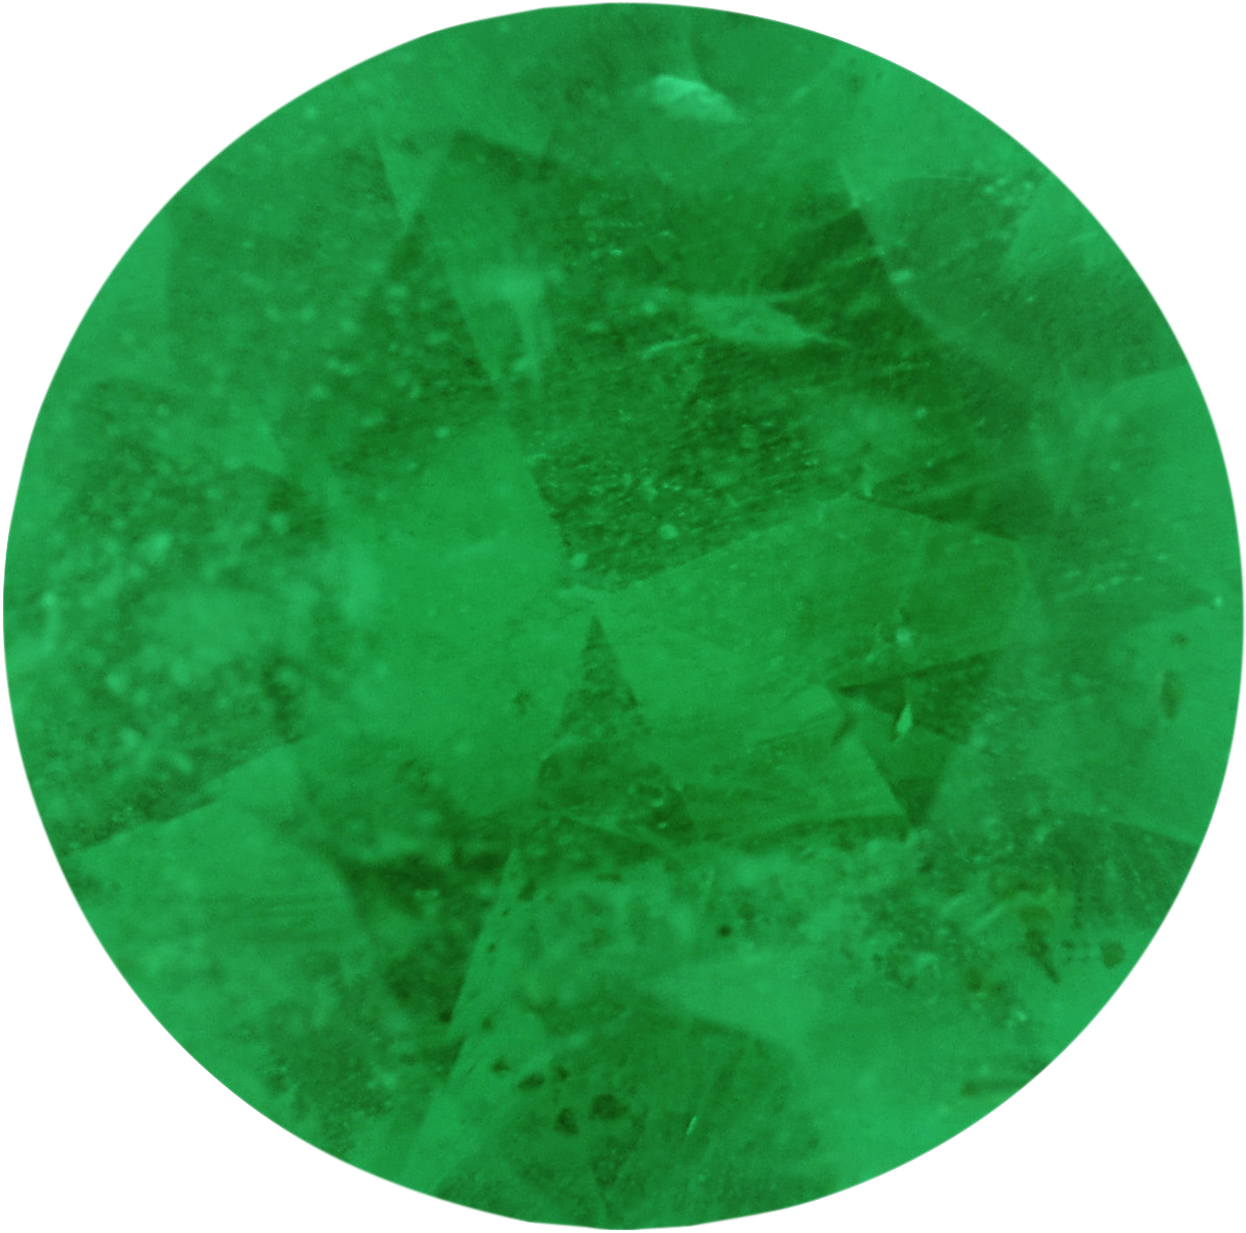 0.56 carats Emerald Loose Gemstone in Round Cut, 5.97 mm